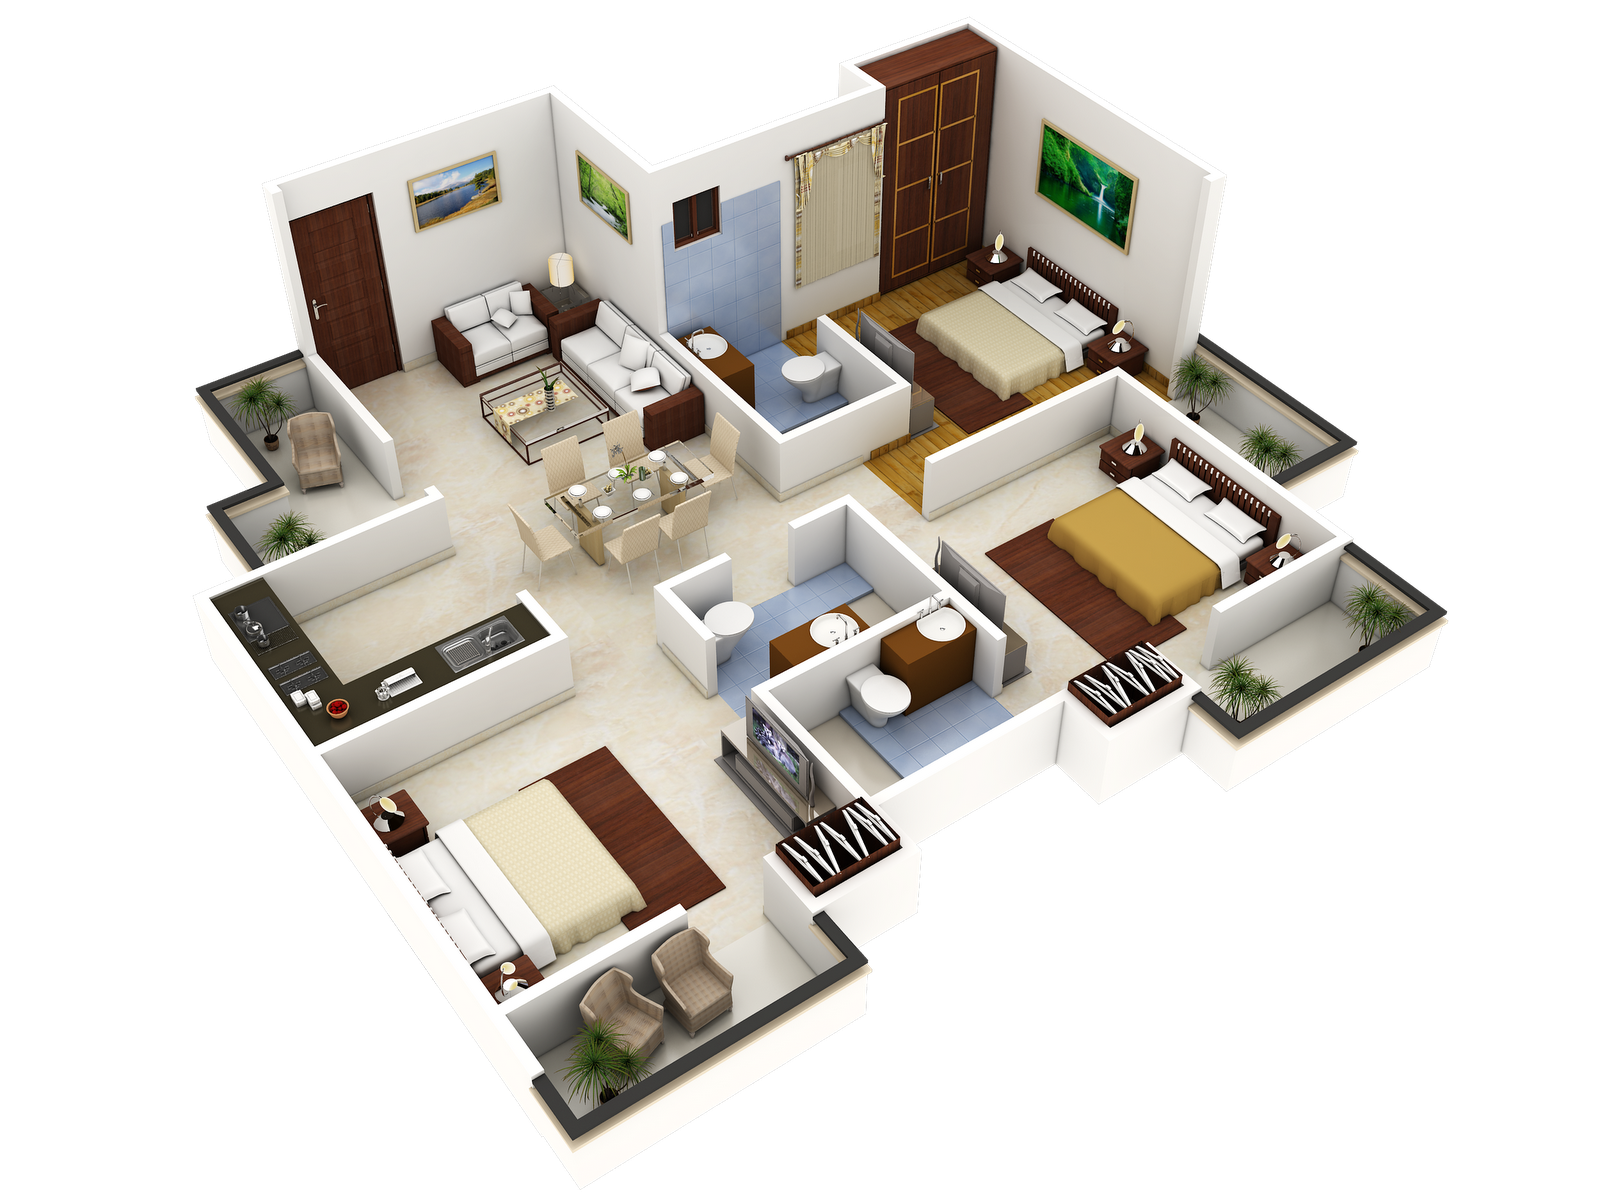 3 bedroom house designs 3d buscar con google grandes for Small house design 3d